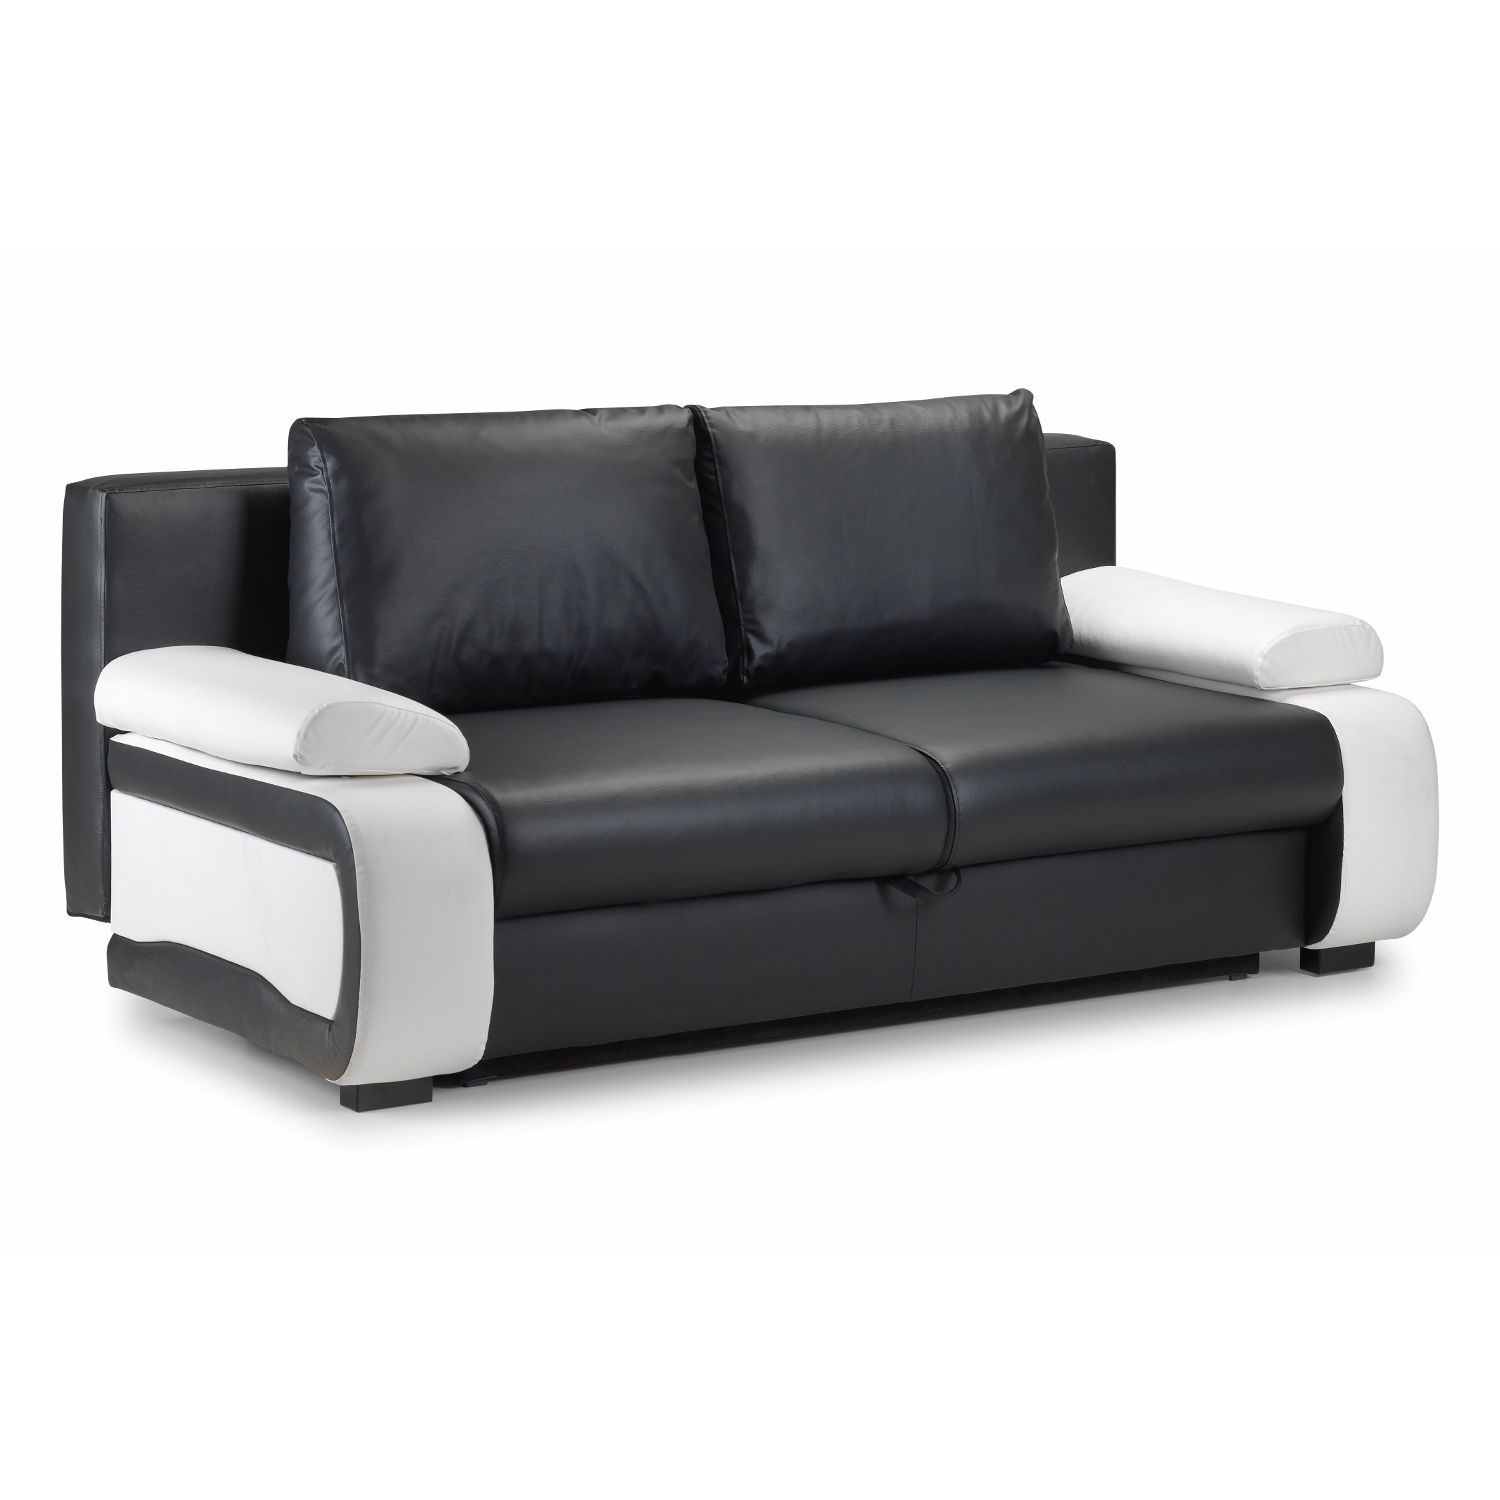 Two Seater Sofa Bed White Sofa Bed Sofa Luxury Sofa Modern